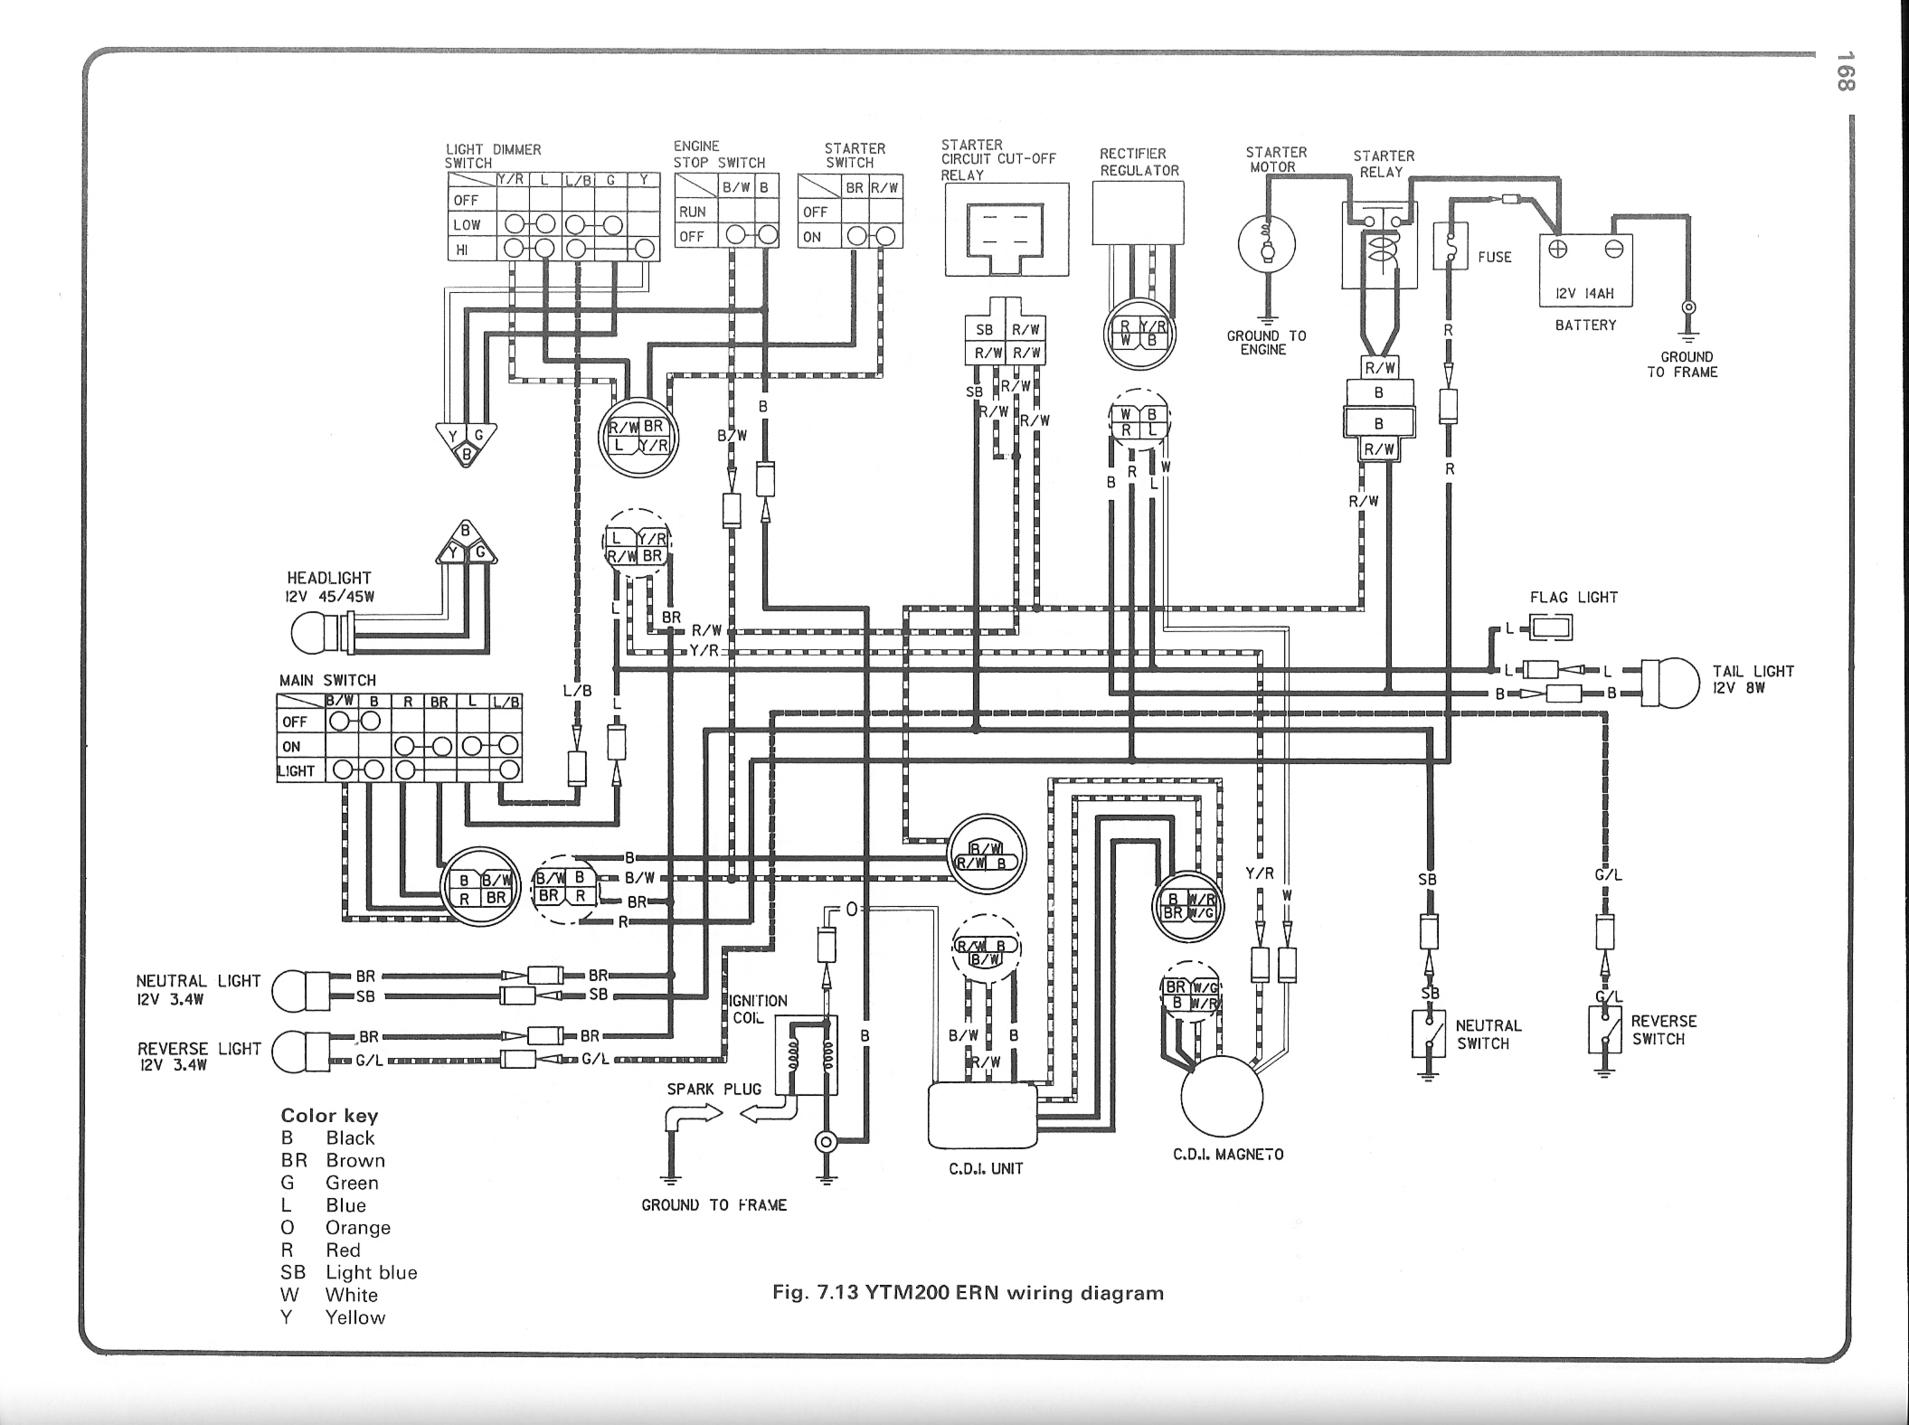 polaris 200 wiring diagram polaris wiring diagrams 1986 polaris trail boss 250 wiring diagram 1986 auto wiring